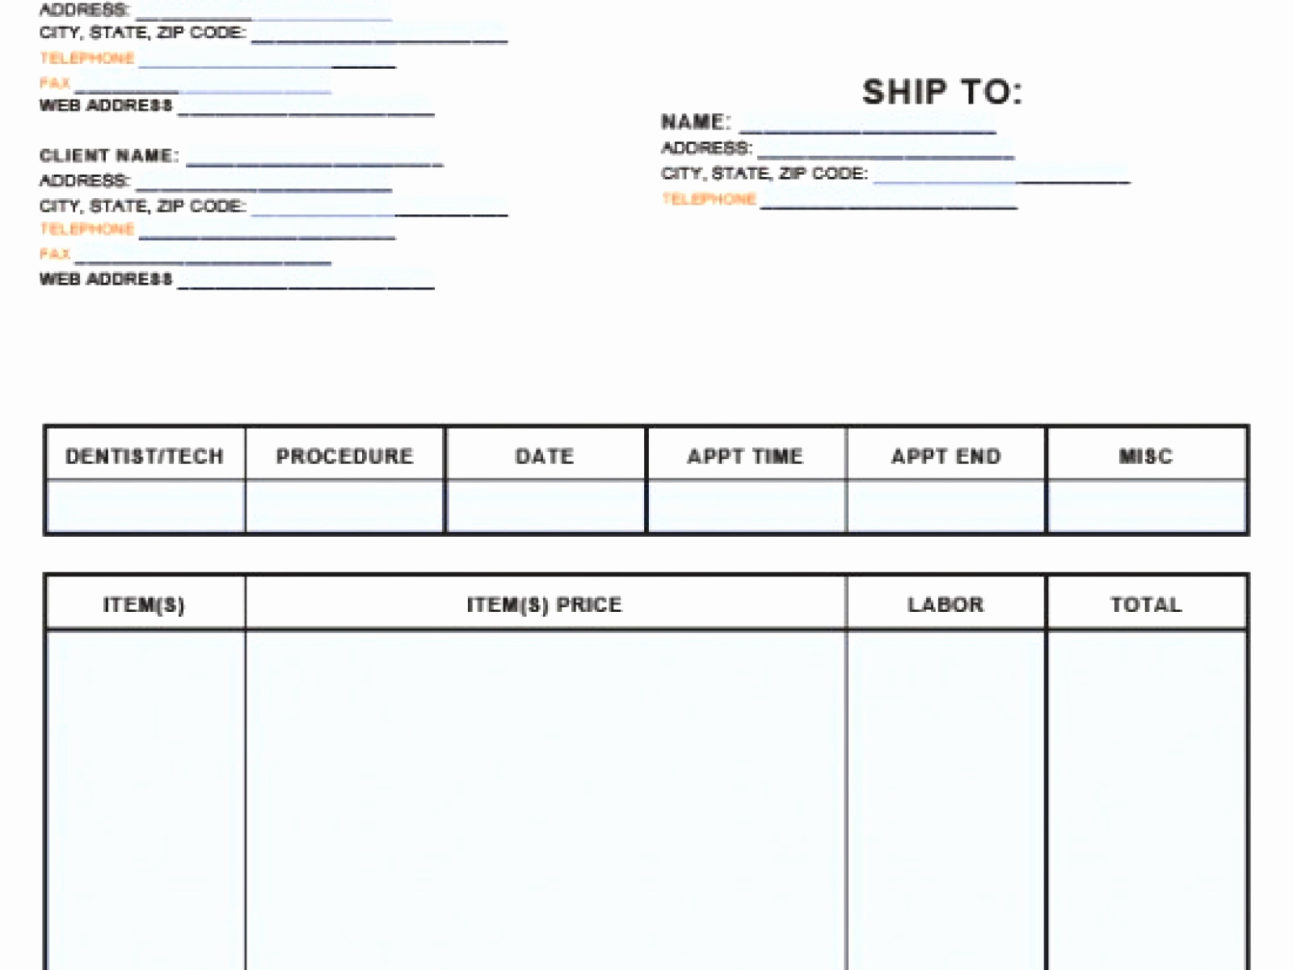 Salvation Army Donation Value Spreadsheet Regarding Salvation Army Donation Spreadsheet Beautiful Donation Value Guide